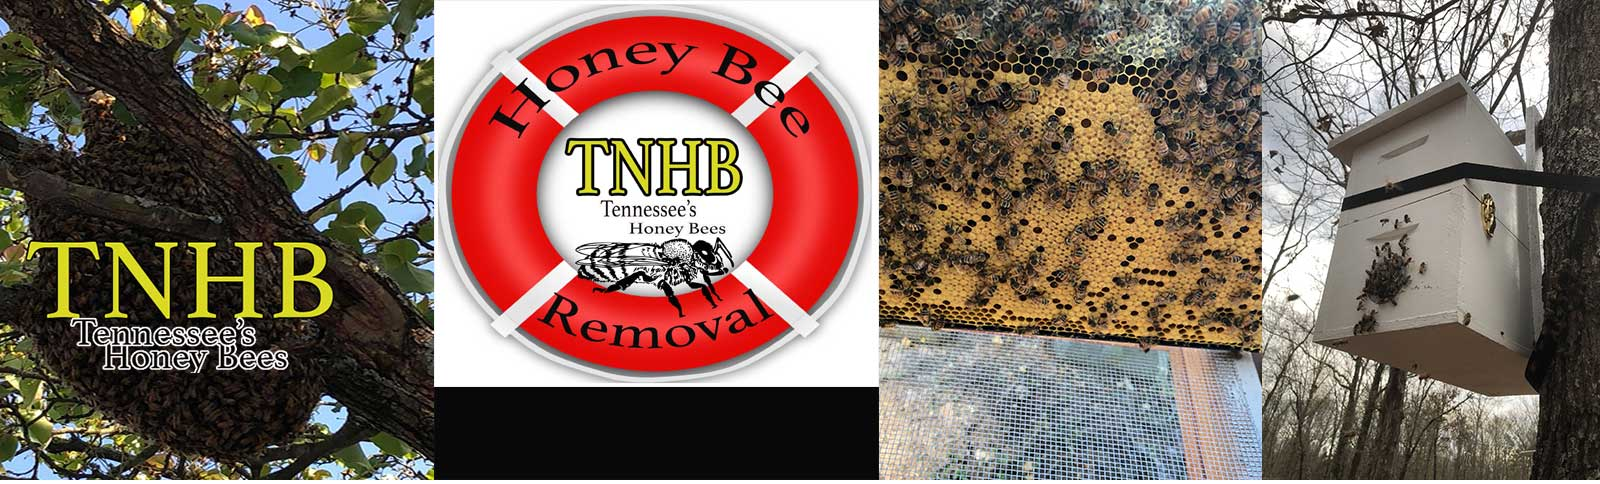 * * * * * * * Honey Bee Rescue / Removal Service * * * * * * * *